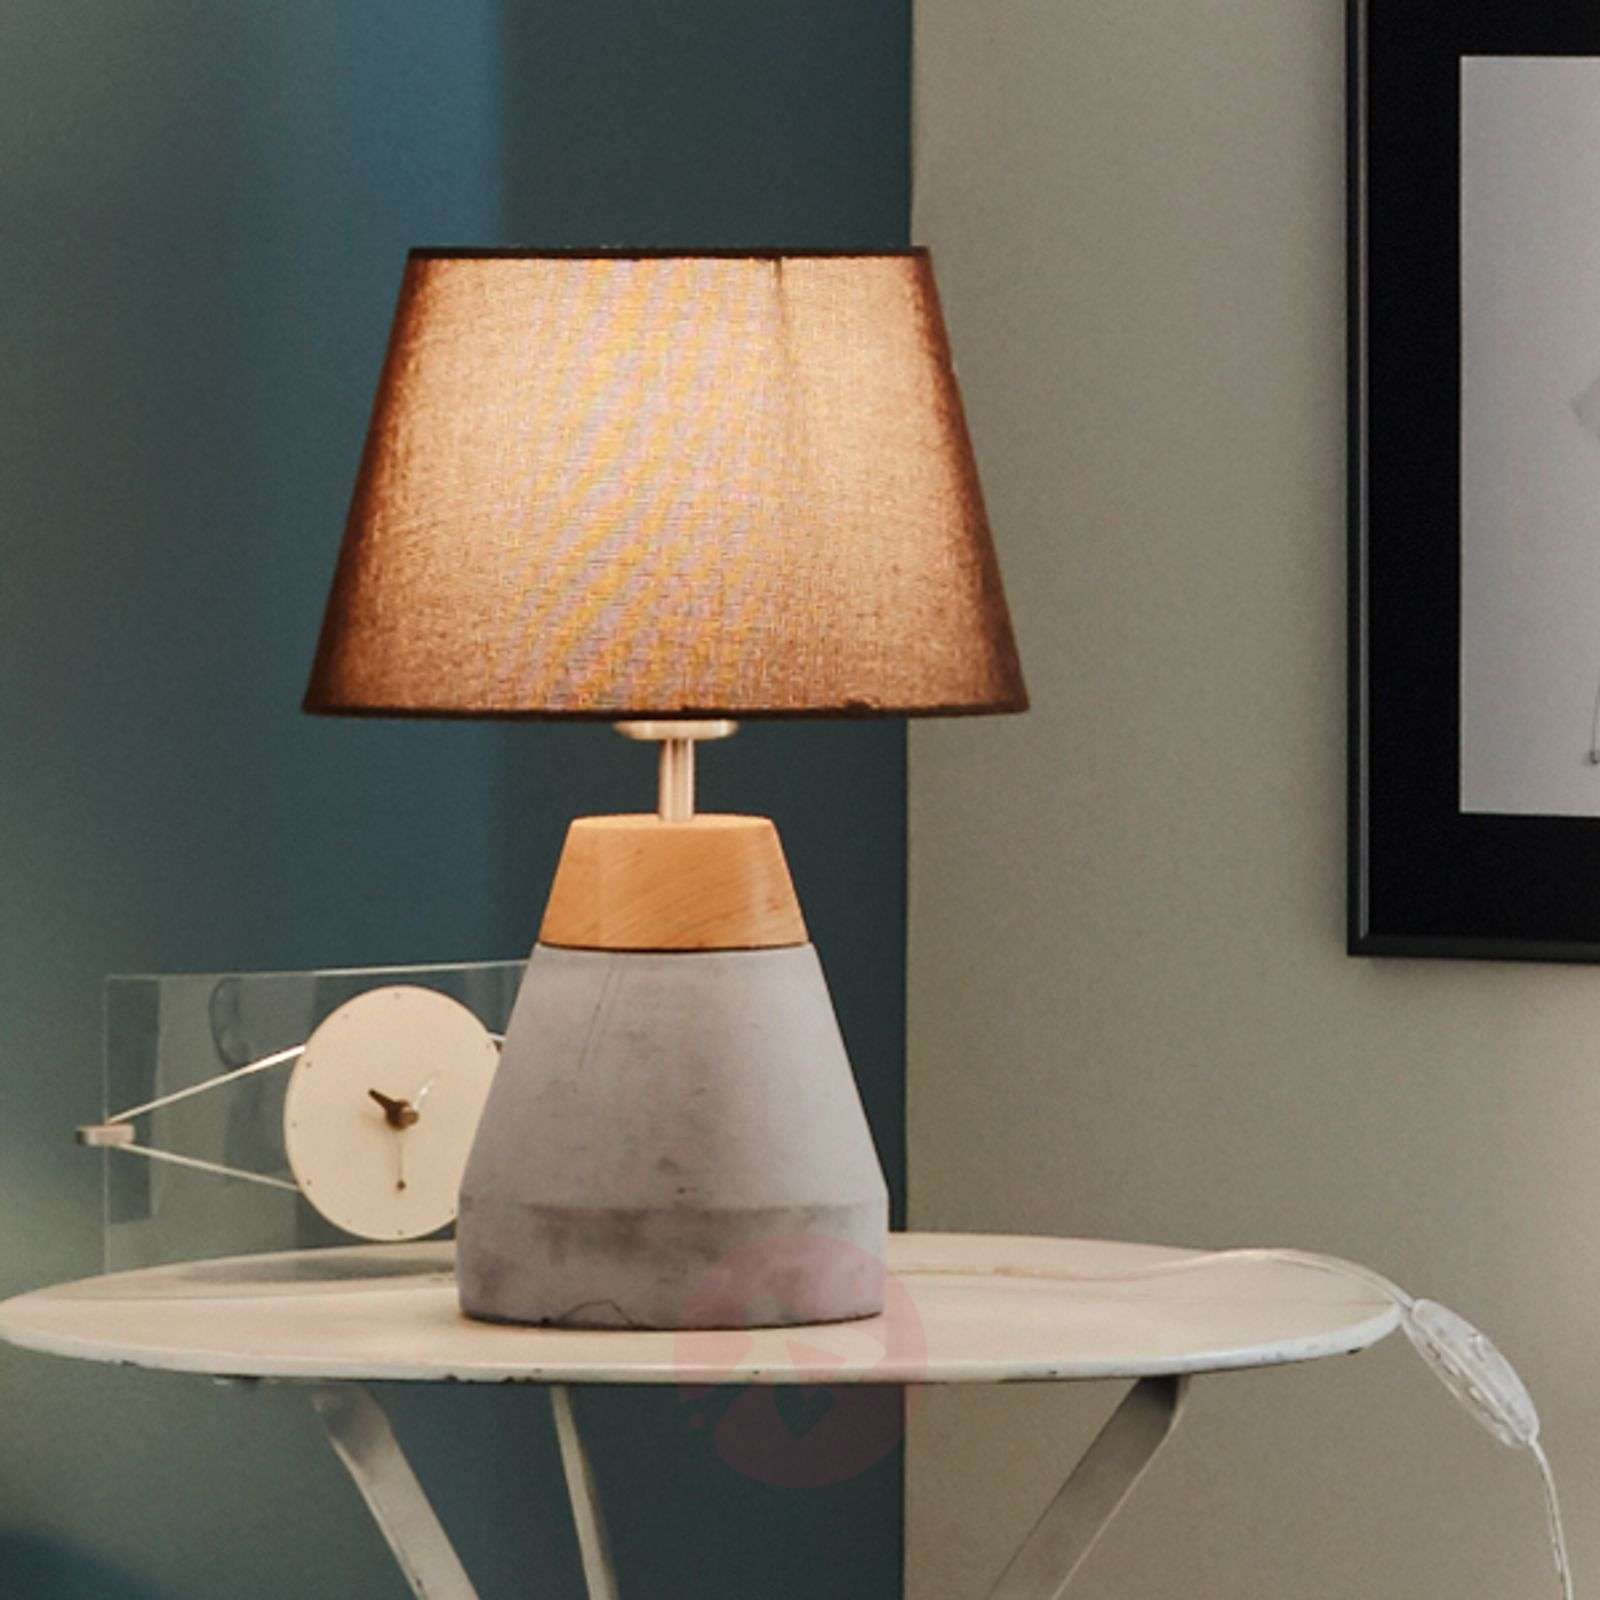 Stylish Tarega fabric table lamp, concrete base-3031819-01